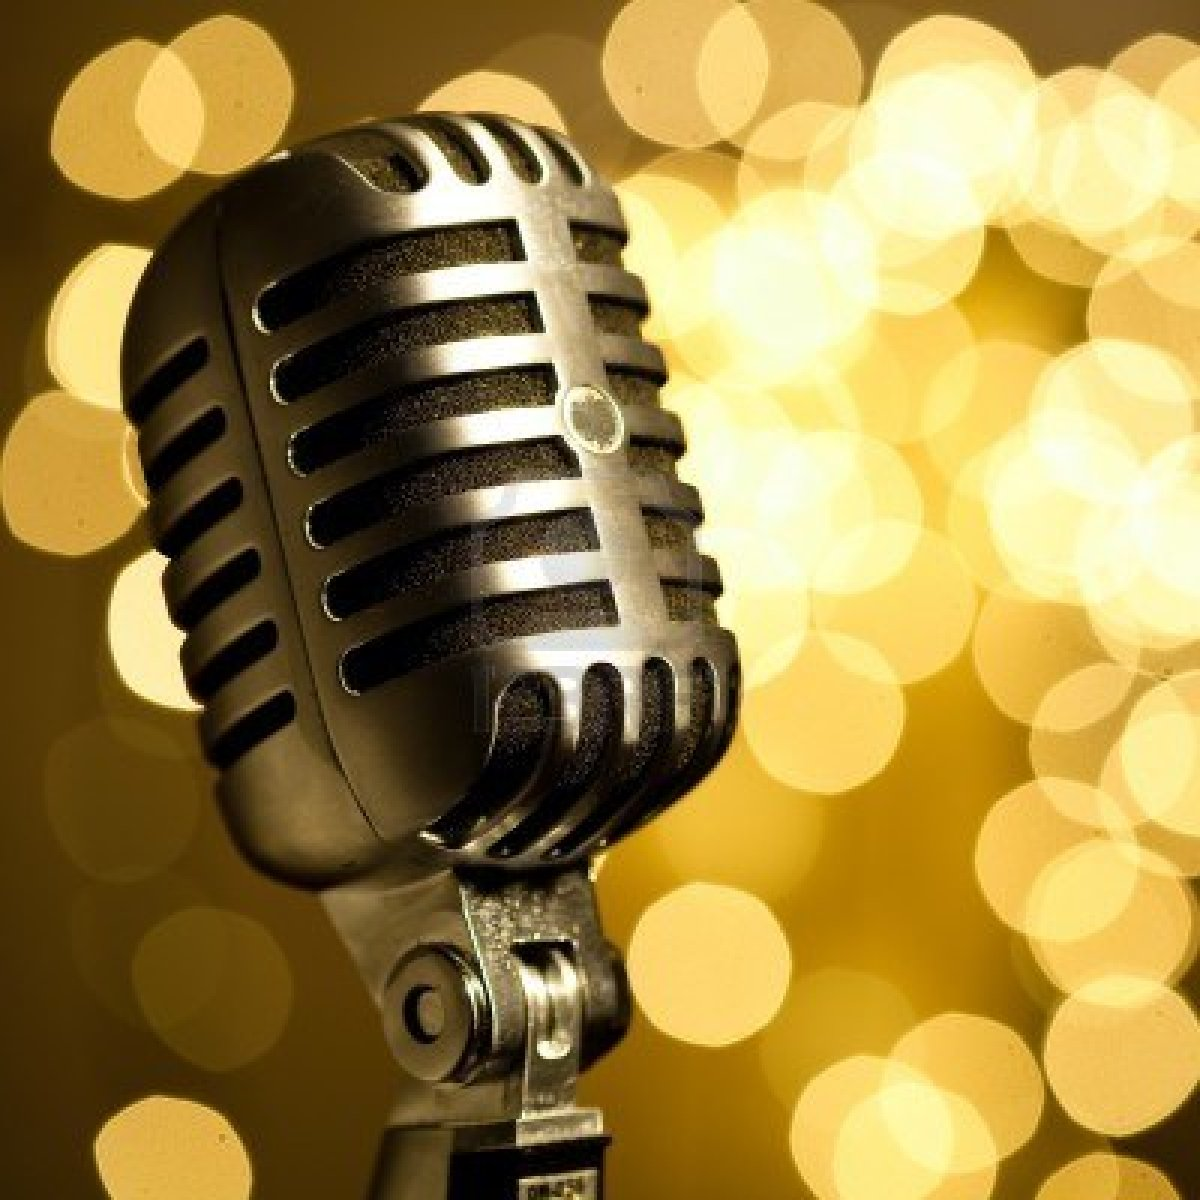 Drawn musician retro microphone Microphone Microphone Vintage Hanging